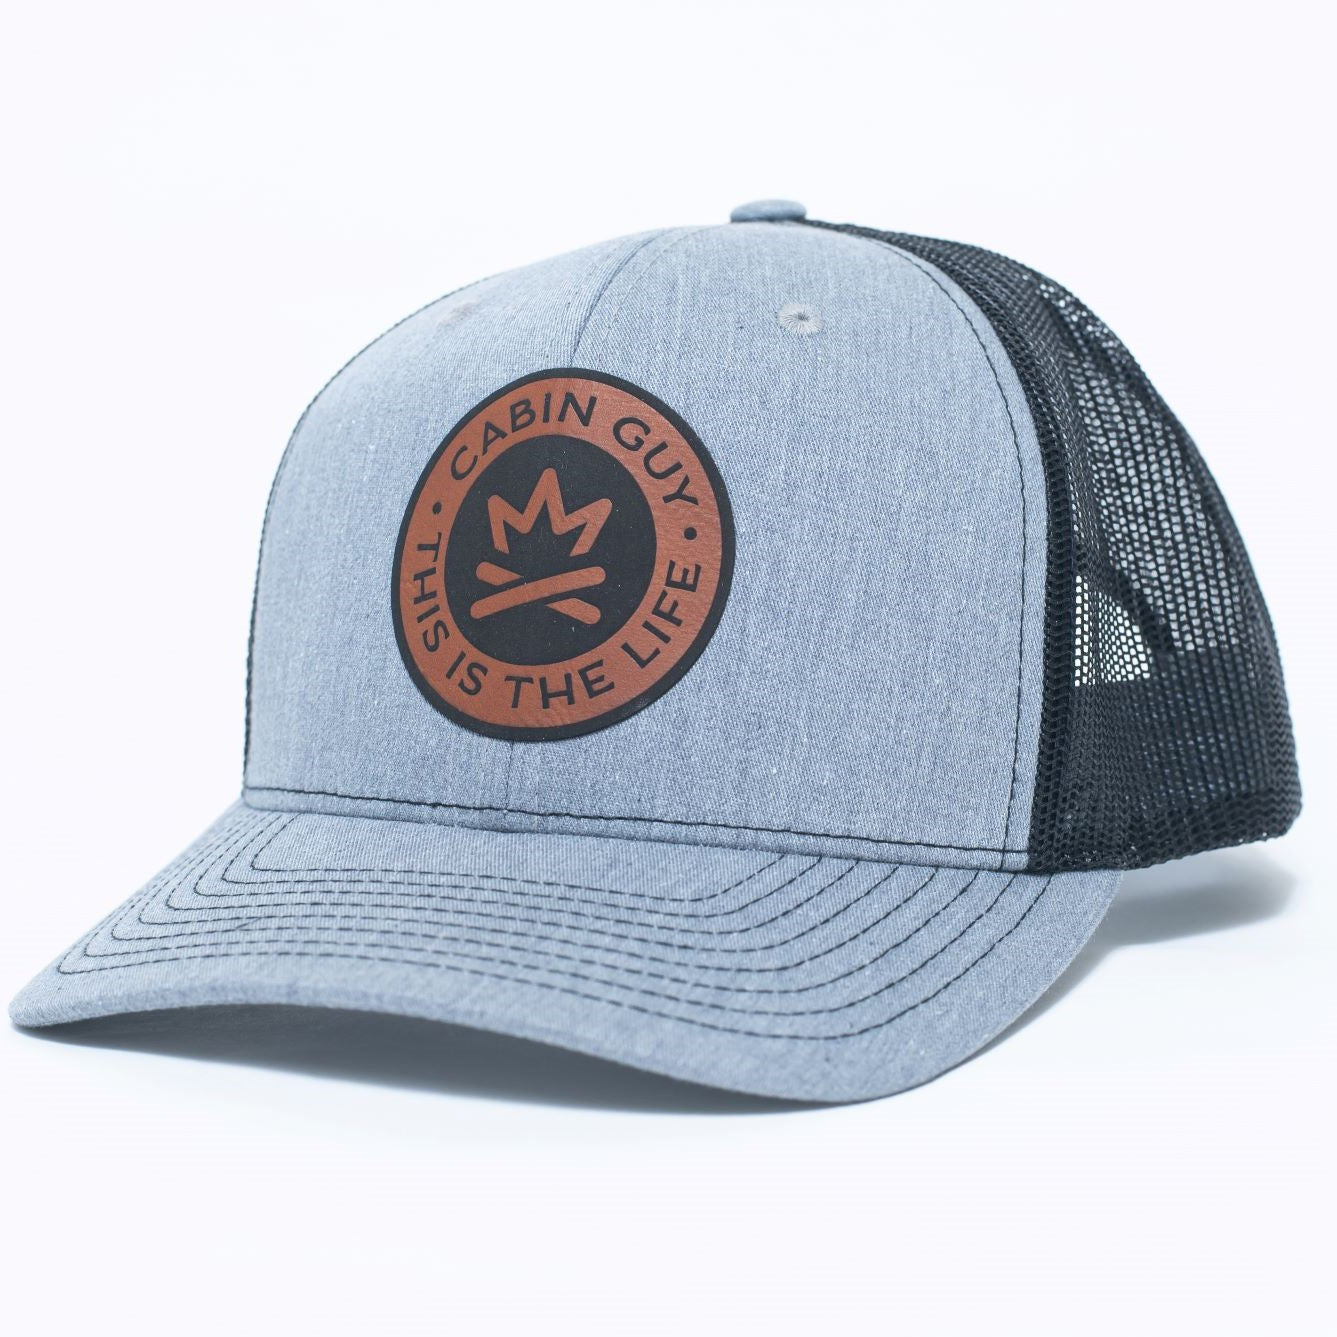 Garrison Fire Crown 'This is the Life' Patch Cap